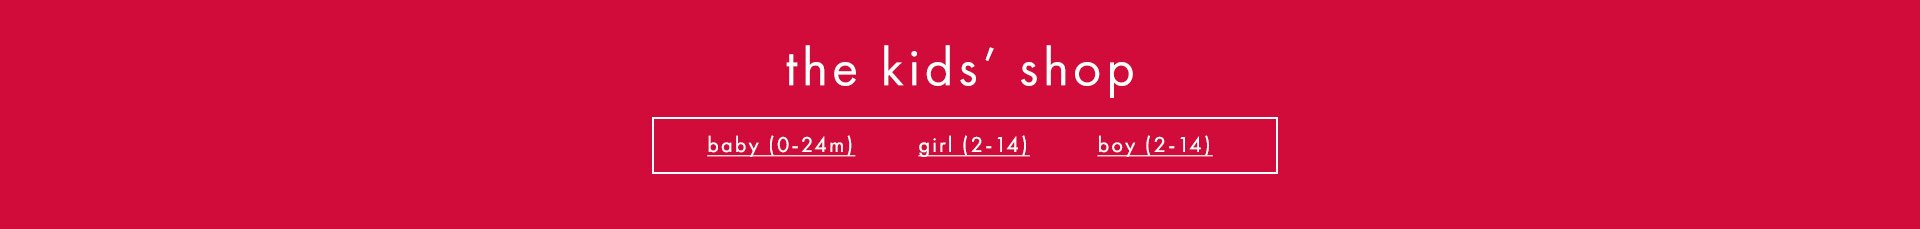 GUESS the Kids' Shop